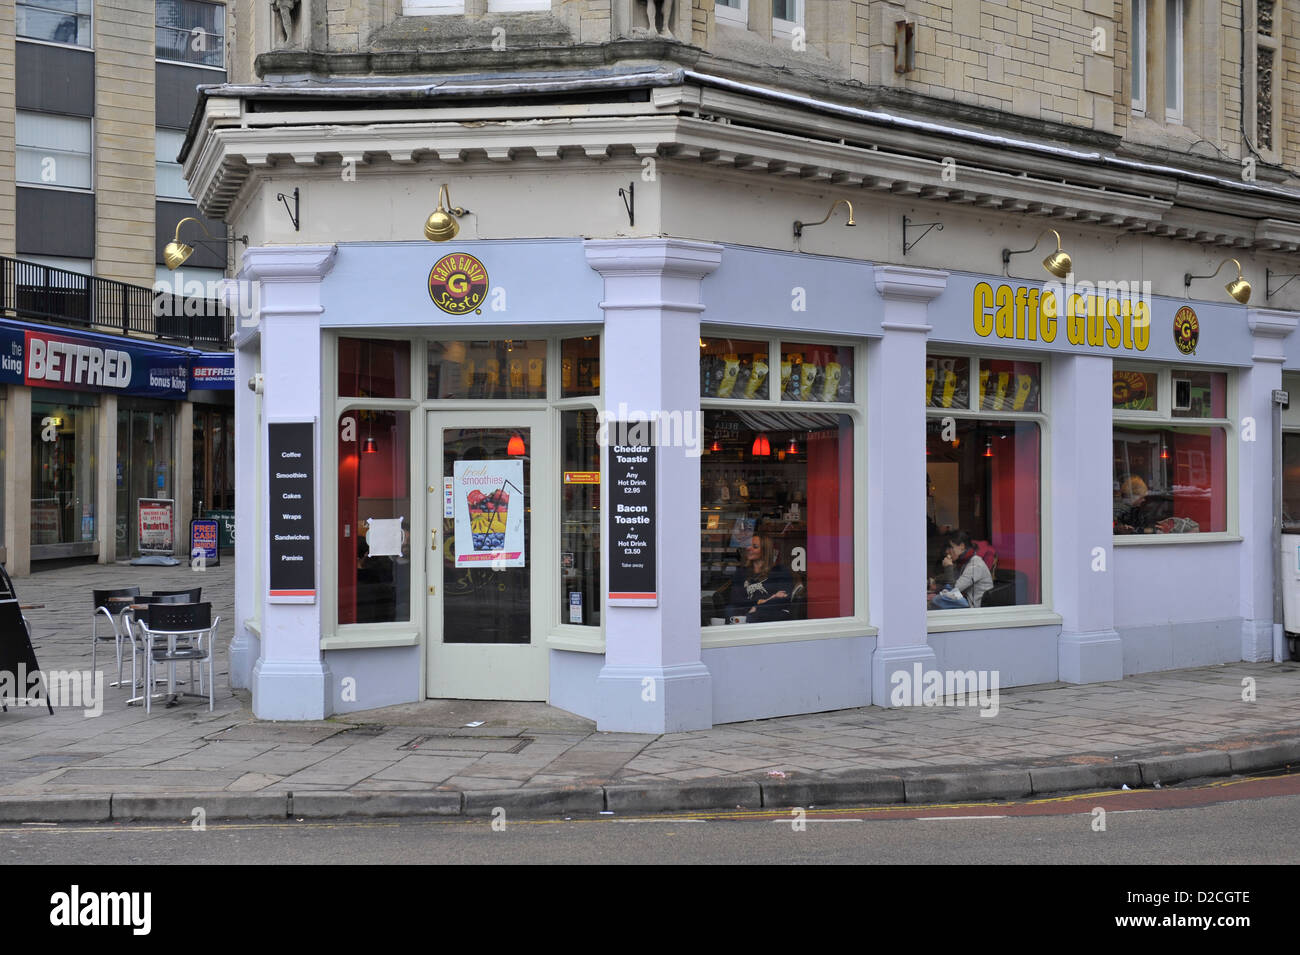 Caffee Gusto Retail shop or unit on UK street - Stock Image